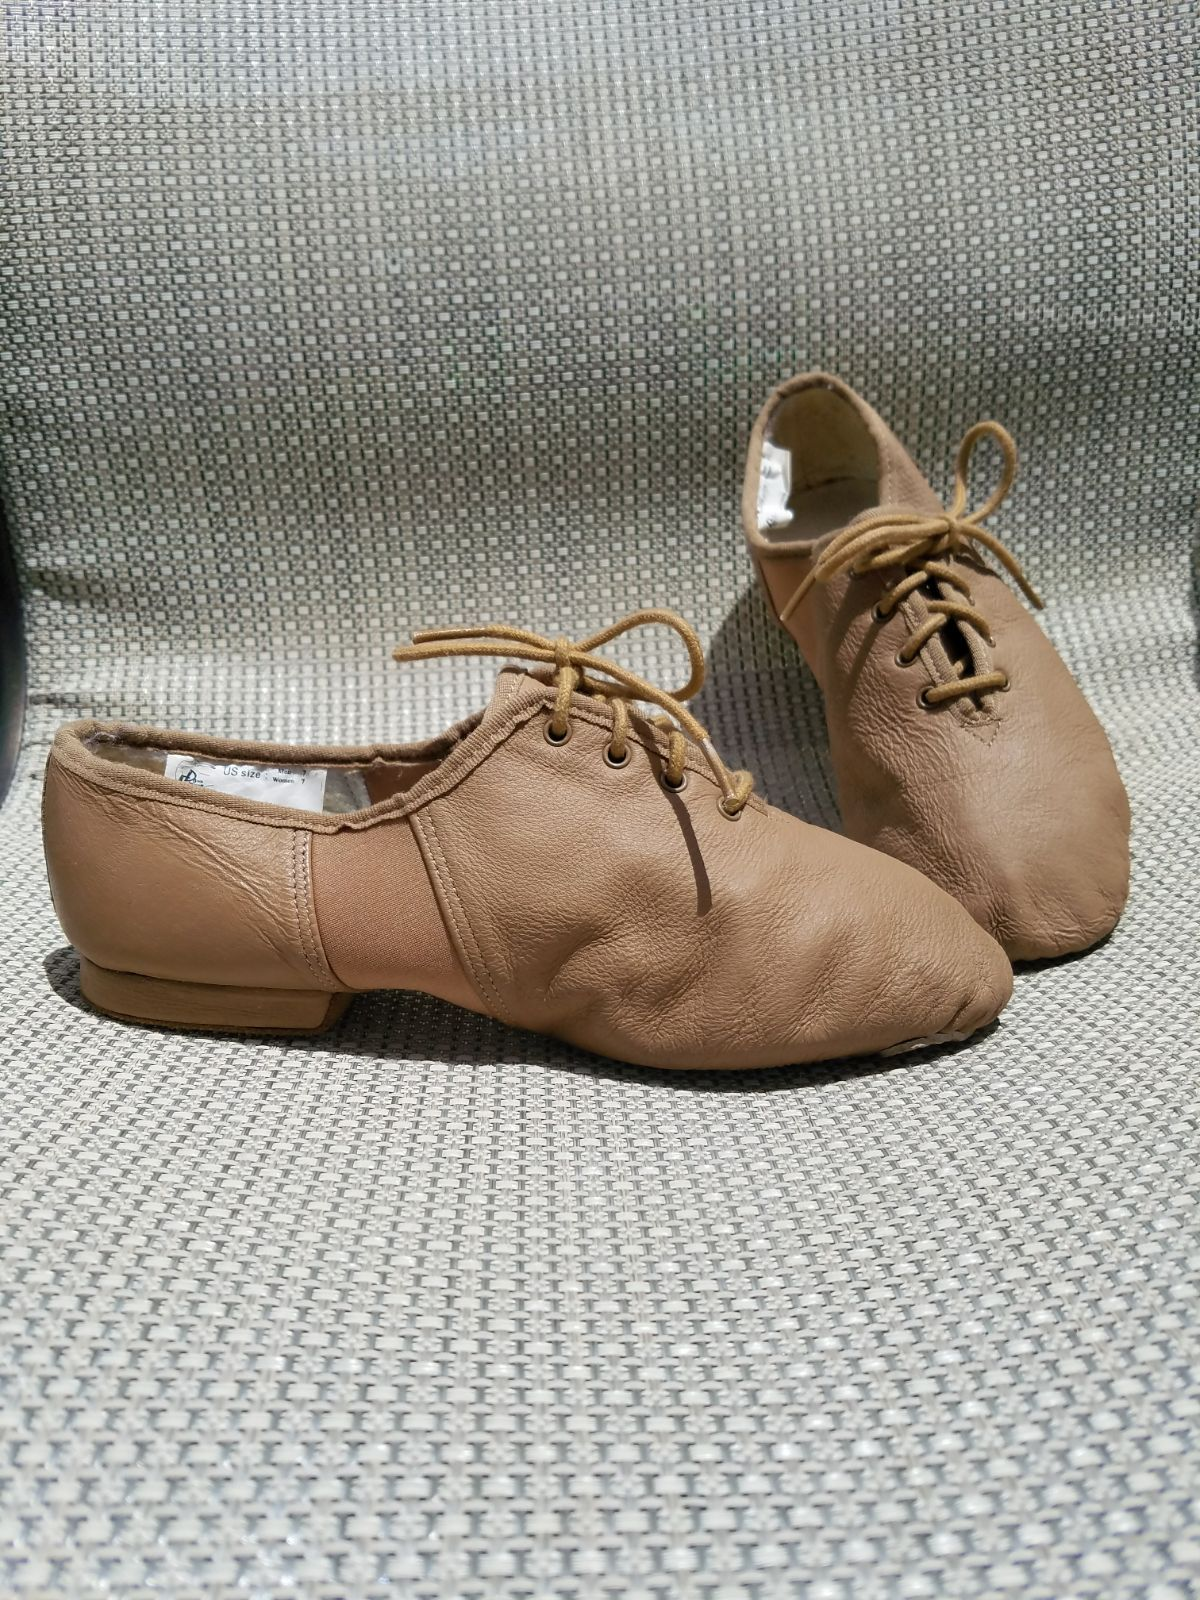 Size 7 Unisex Fits More Like A Woman S 7 N A Man S 5 Brand Dance Express By Jazz World Euc Barely Worn Maybe Once I Dance Shoes Jazz Jazz Shoes Tan Leather